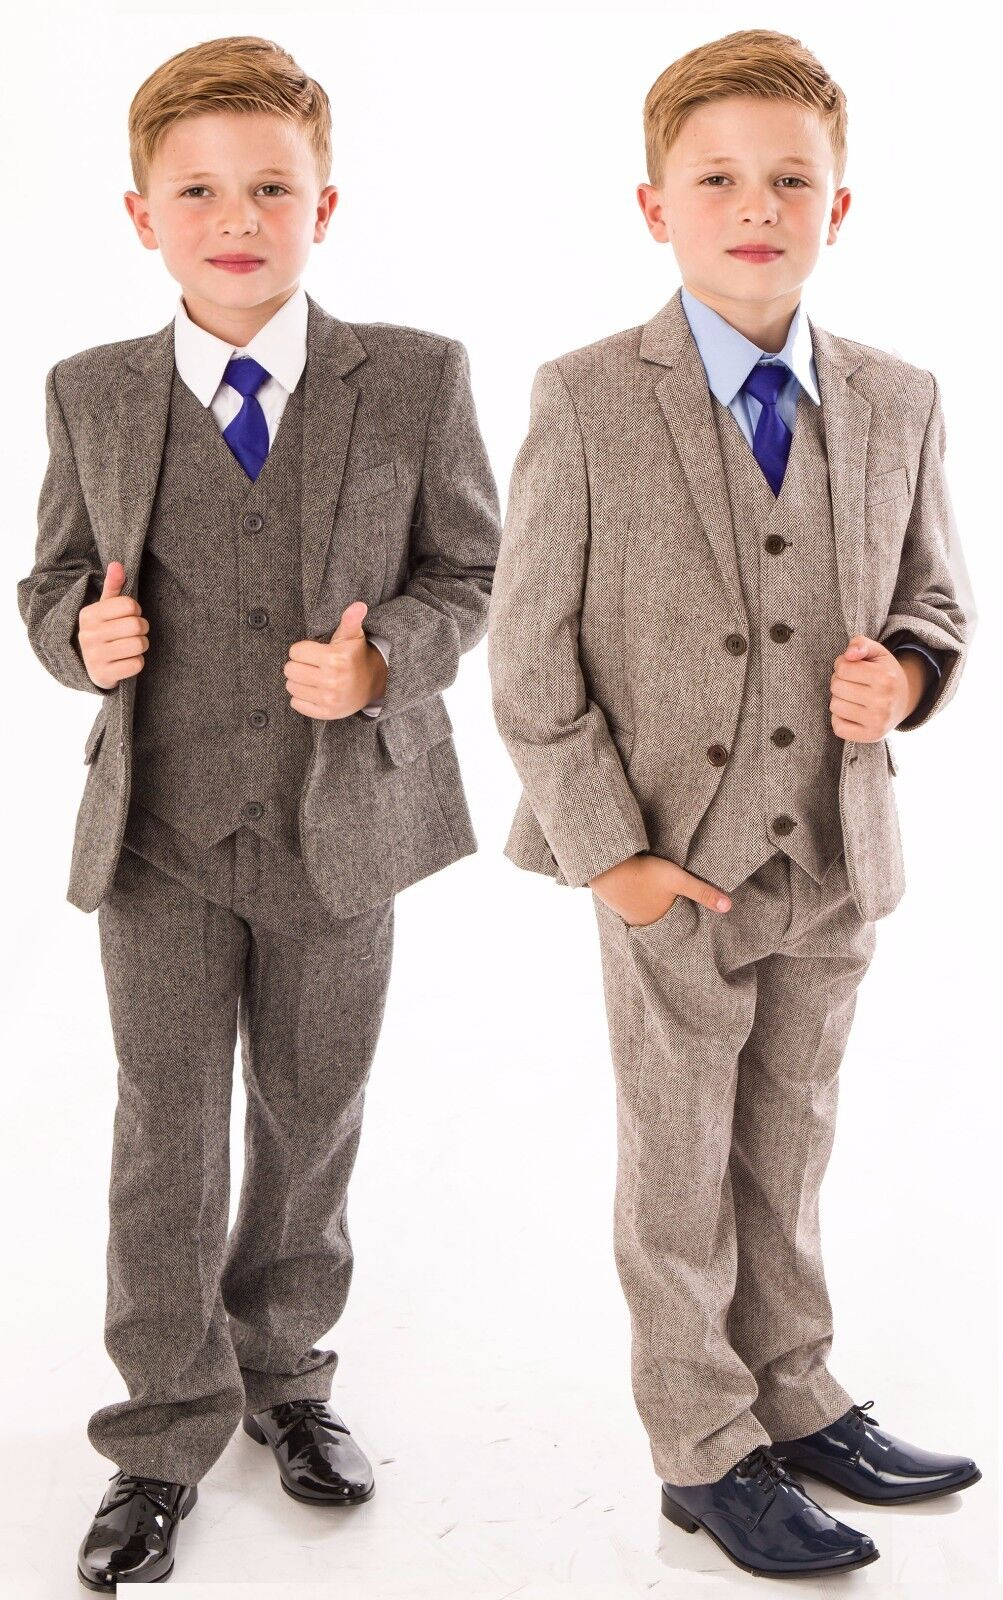 BOYS SUITS Boys Wedding Suit 5pc Tweed Waistcoat Suit Page Boy ...